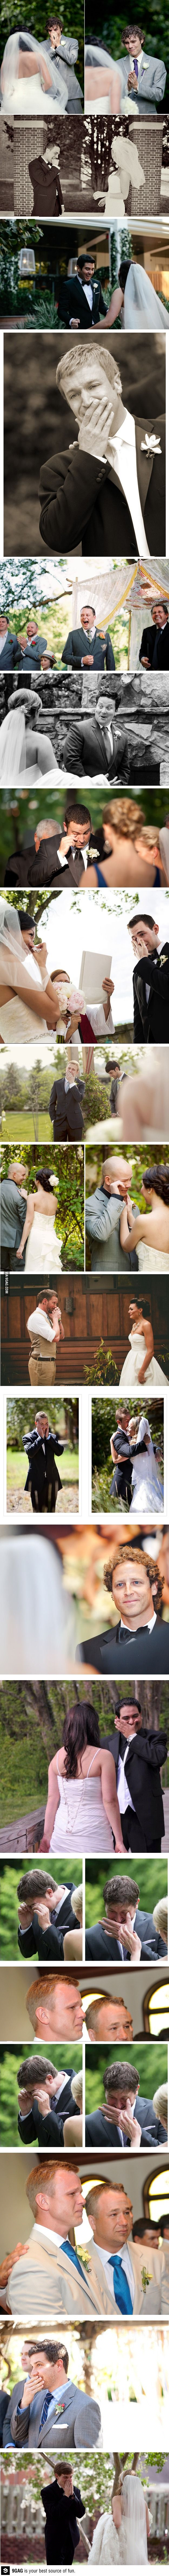 The groom's reactions when they see their bride in a wedding dress for the first time